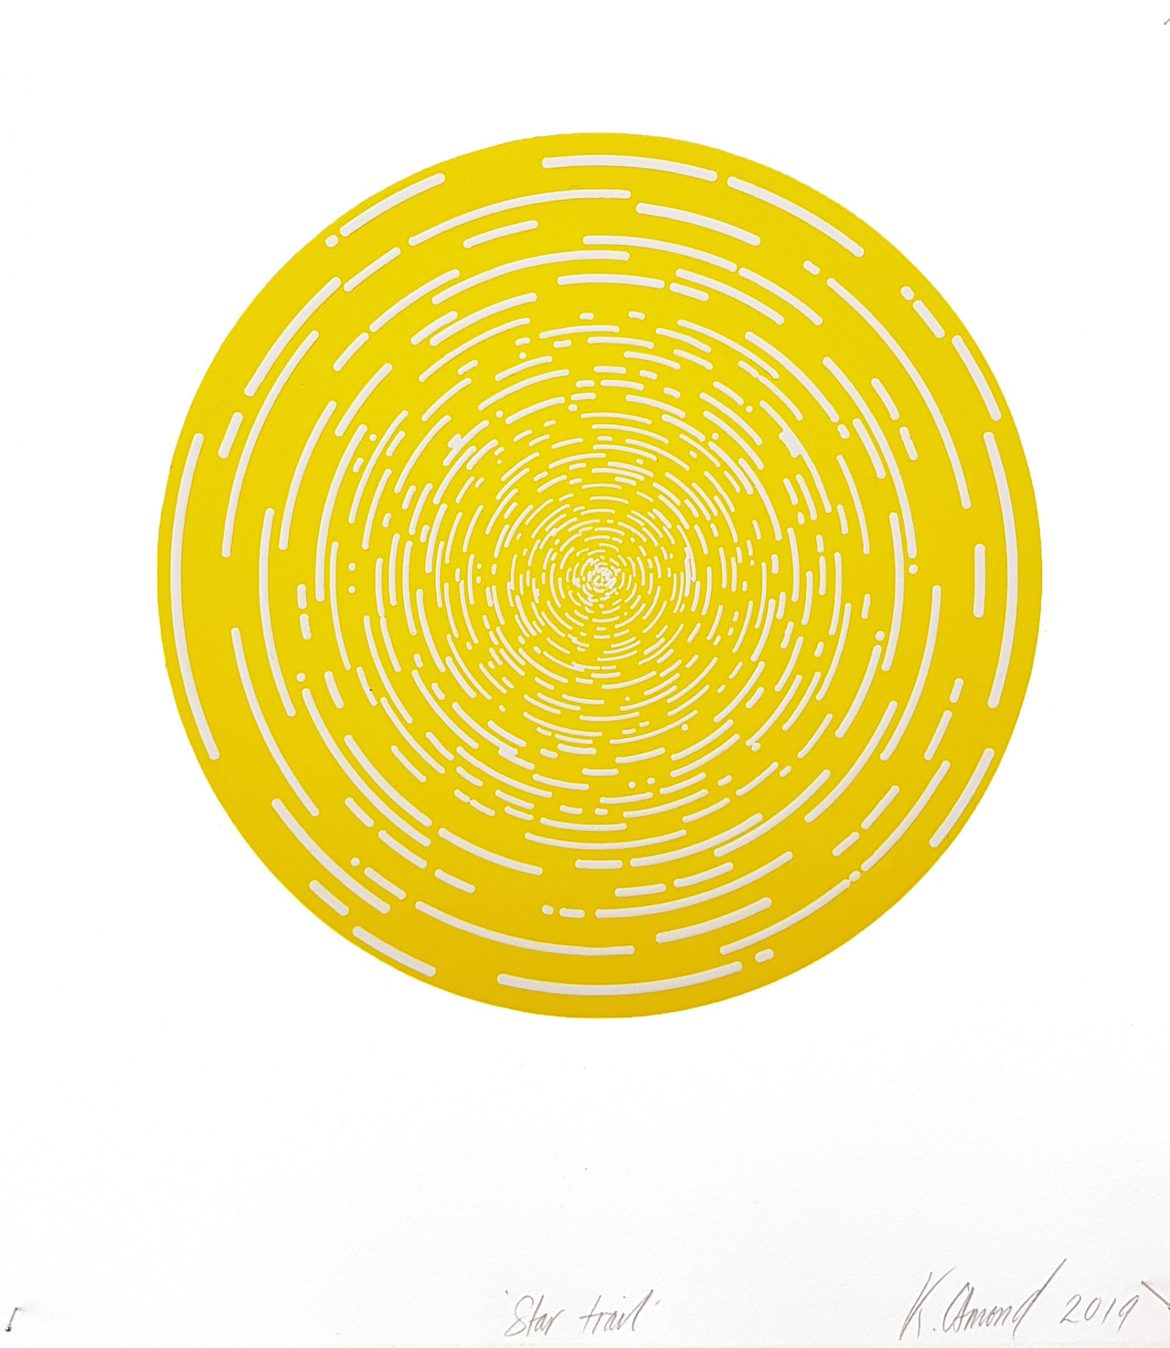 Star Trail (Lemon Yellow), woodblock print, 300gsm hahnemühle deckled edge etching paper, edition of 5 +1AP, 35 x 31 cm